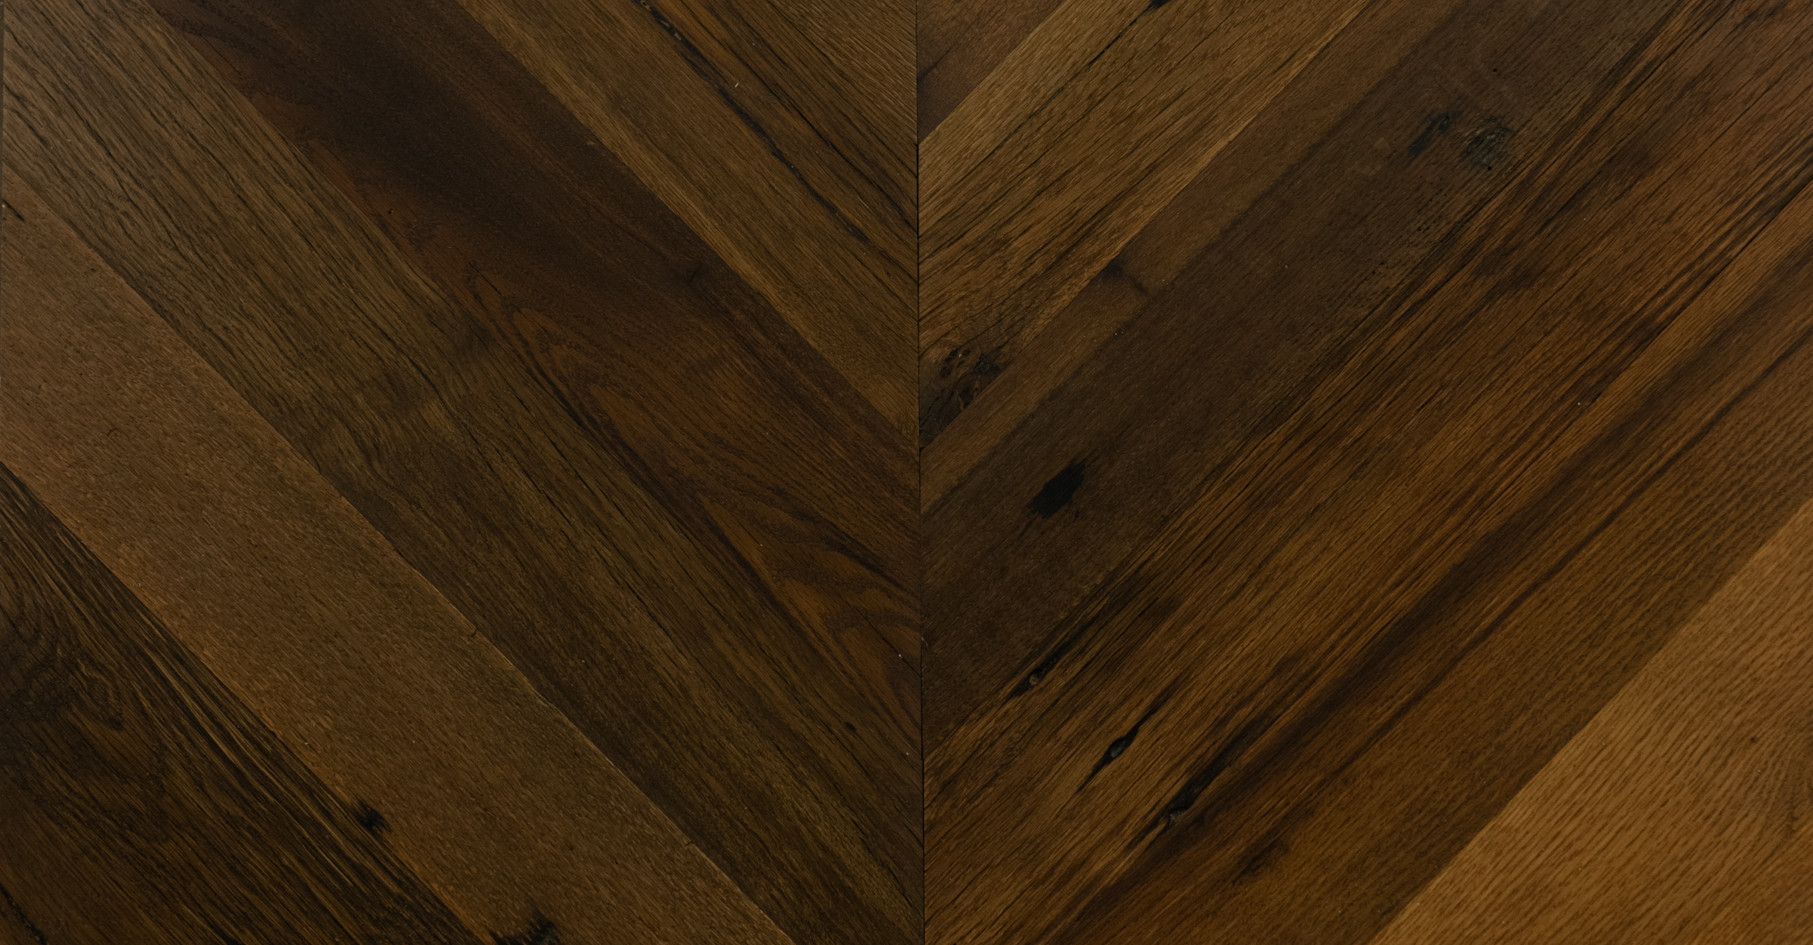 chevron hardwood flooring pattern